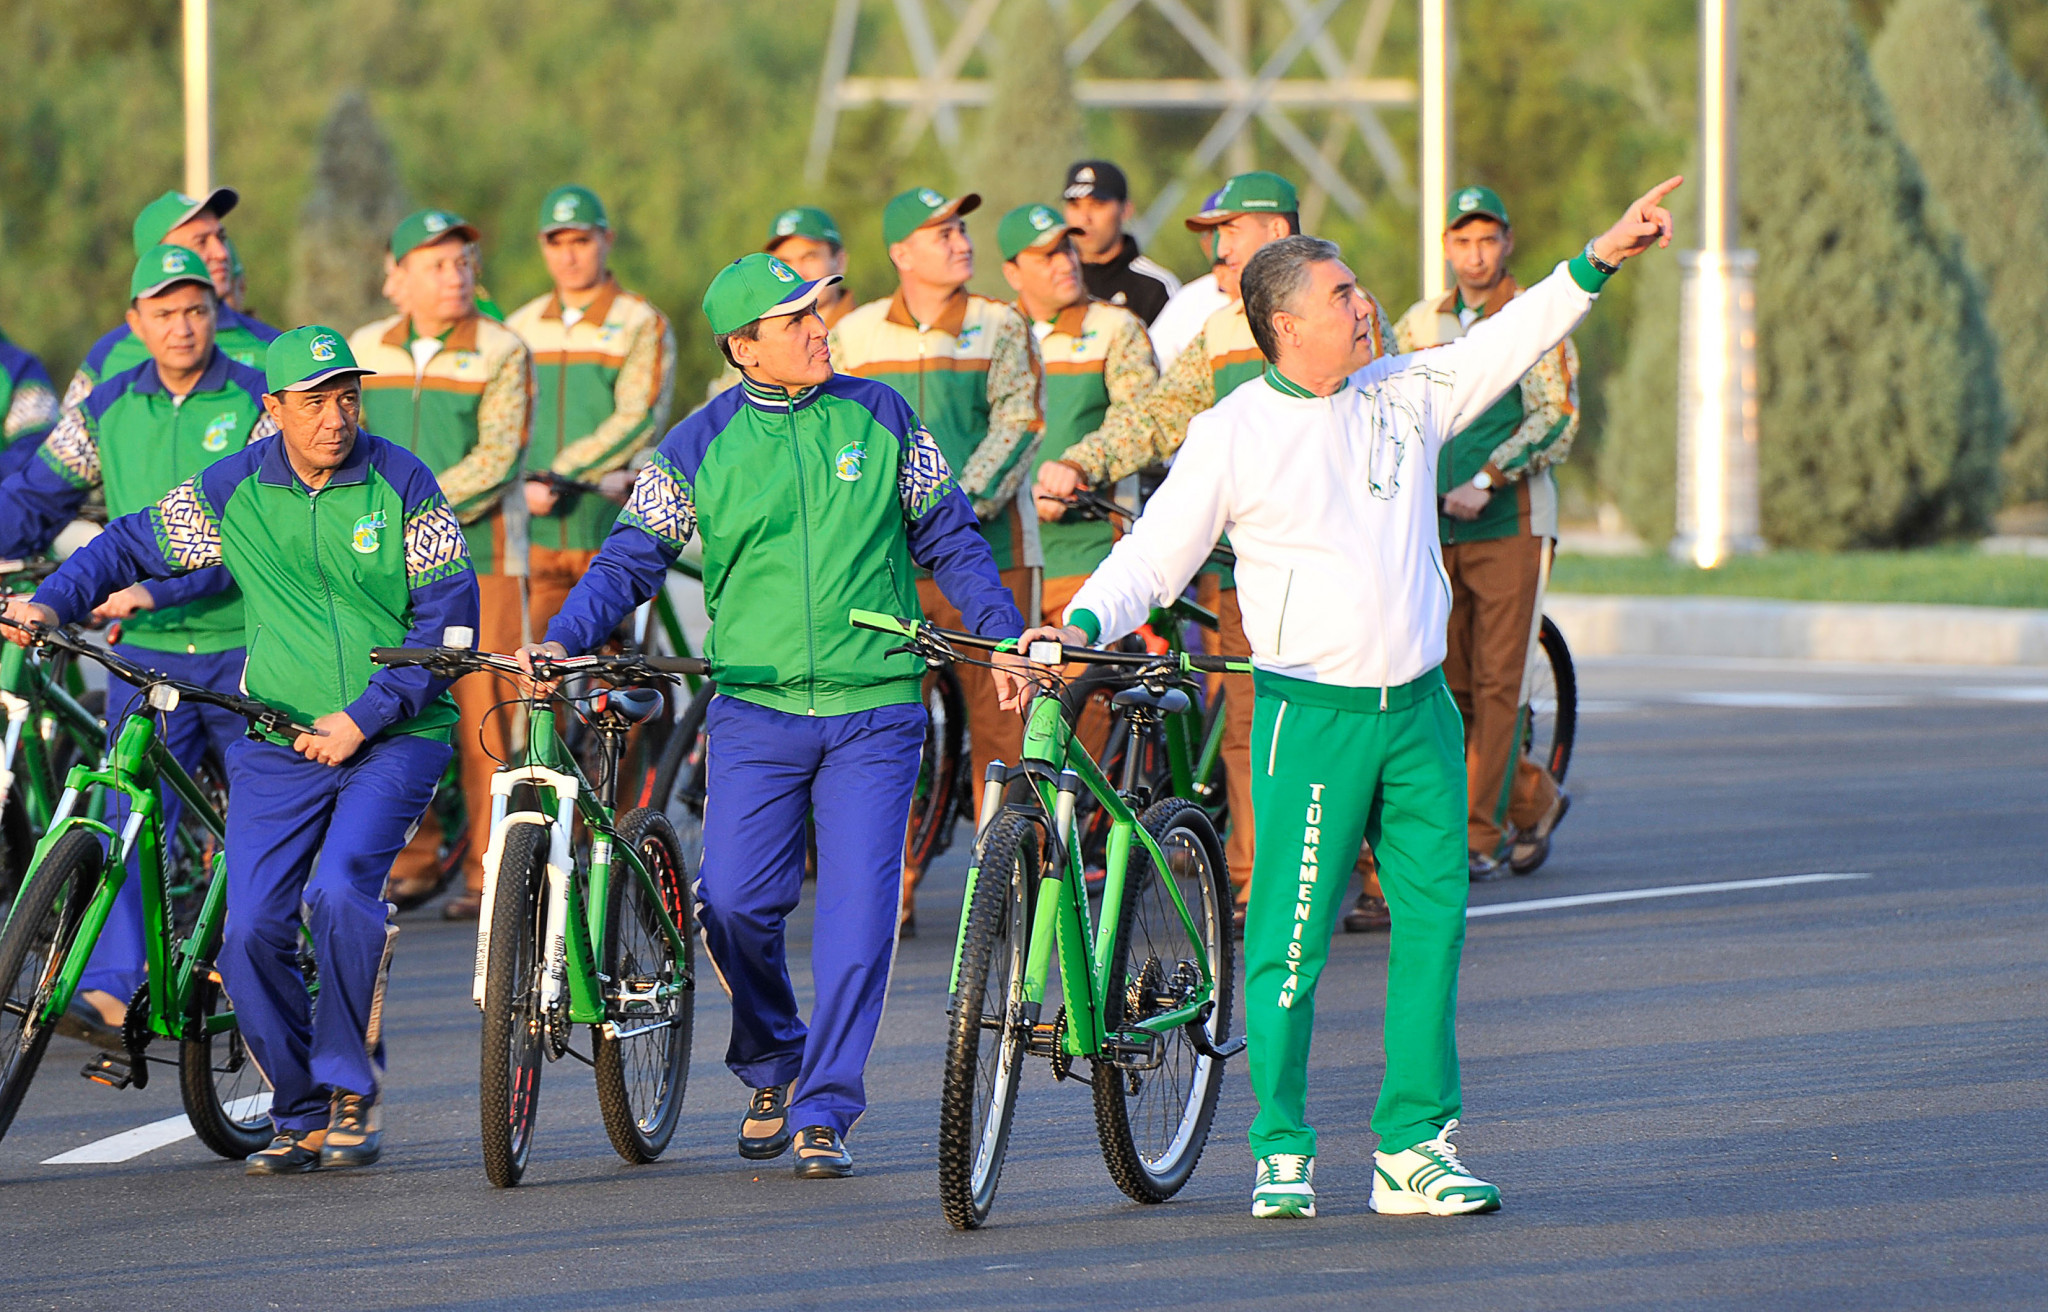 Turkmenistan, led by President Gurbanguly Berdimuhamedov, was awarded the 2021 Track Cycling World Championships in 2018 ©Getty Images